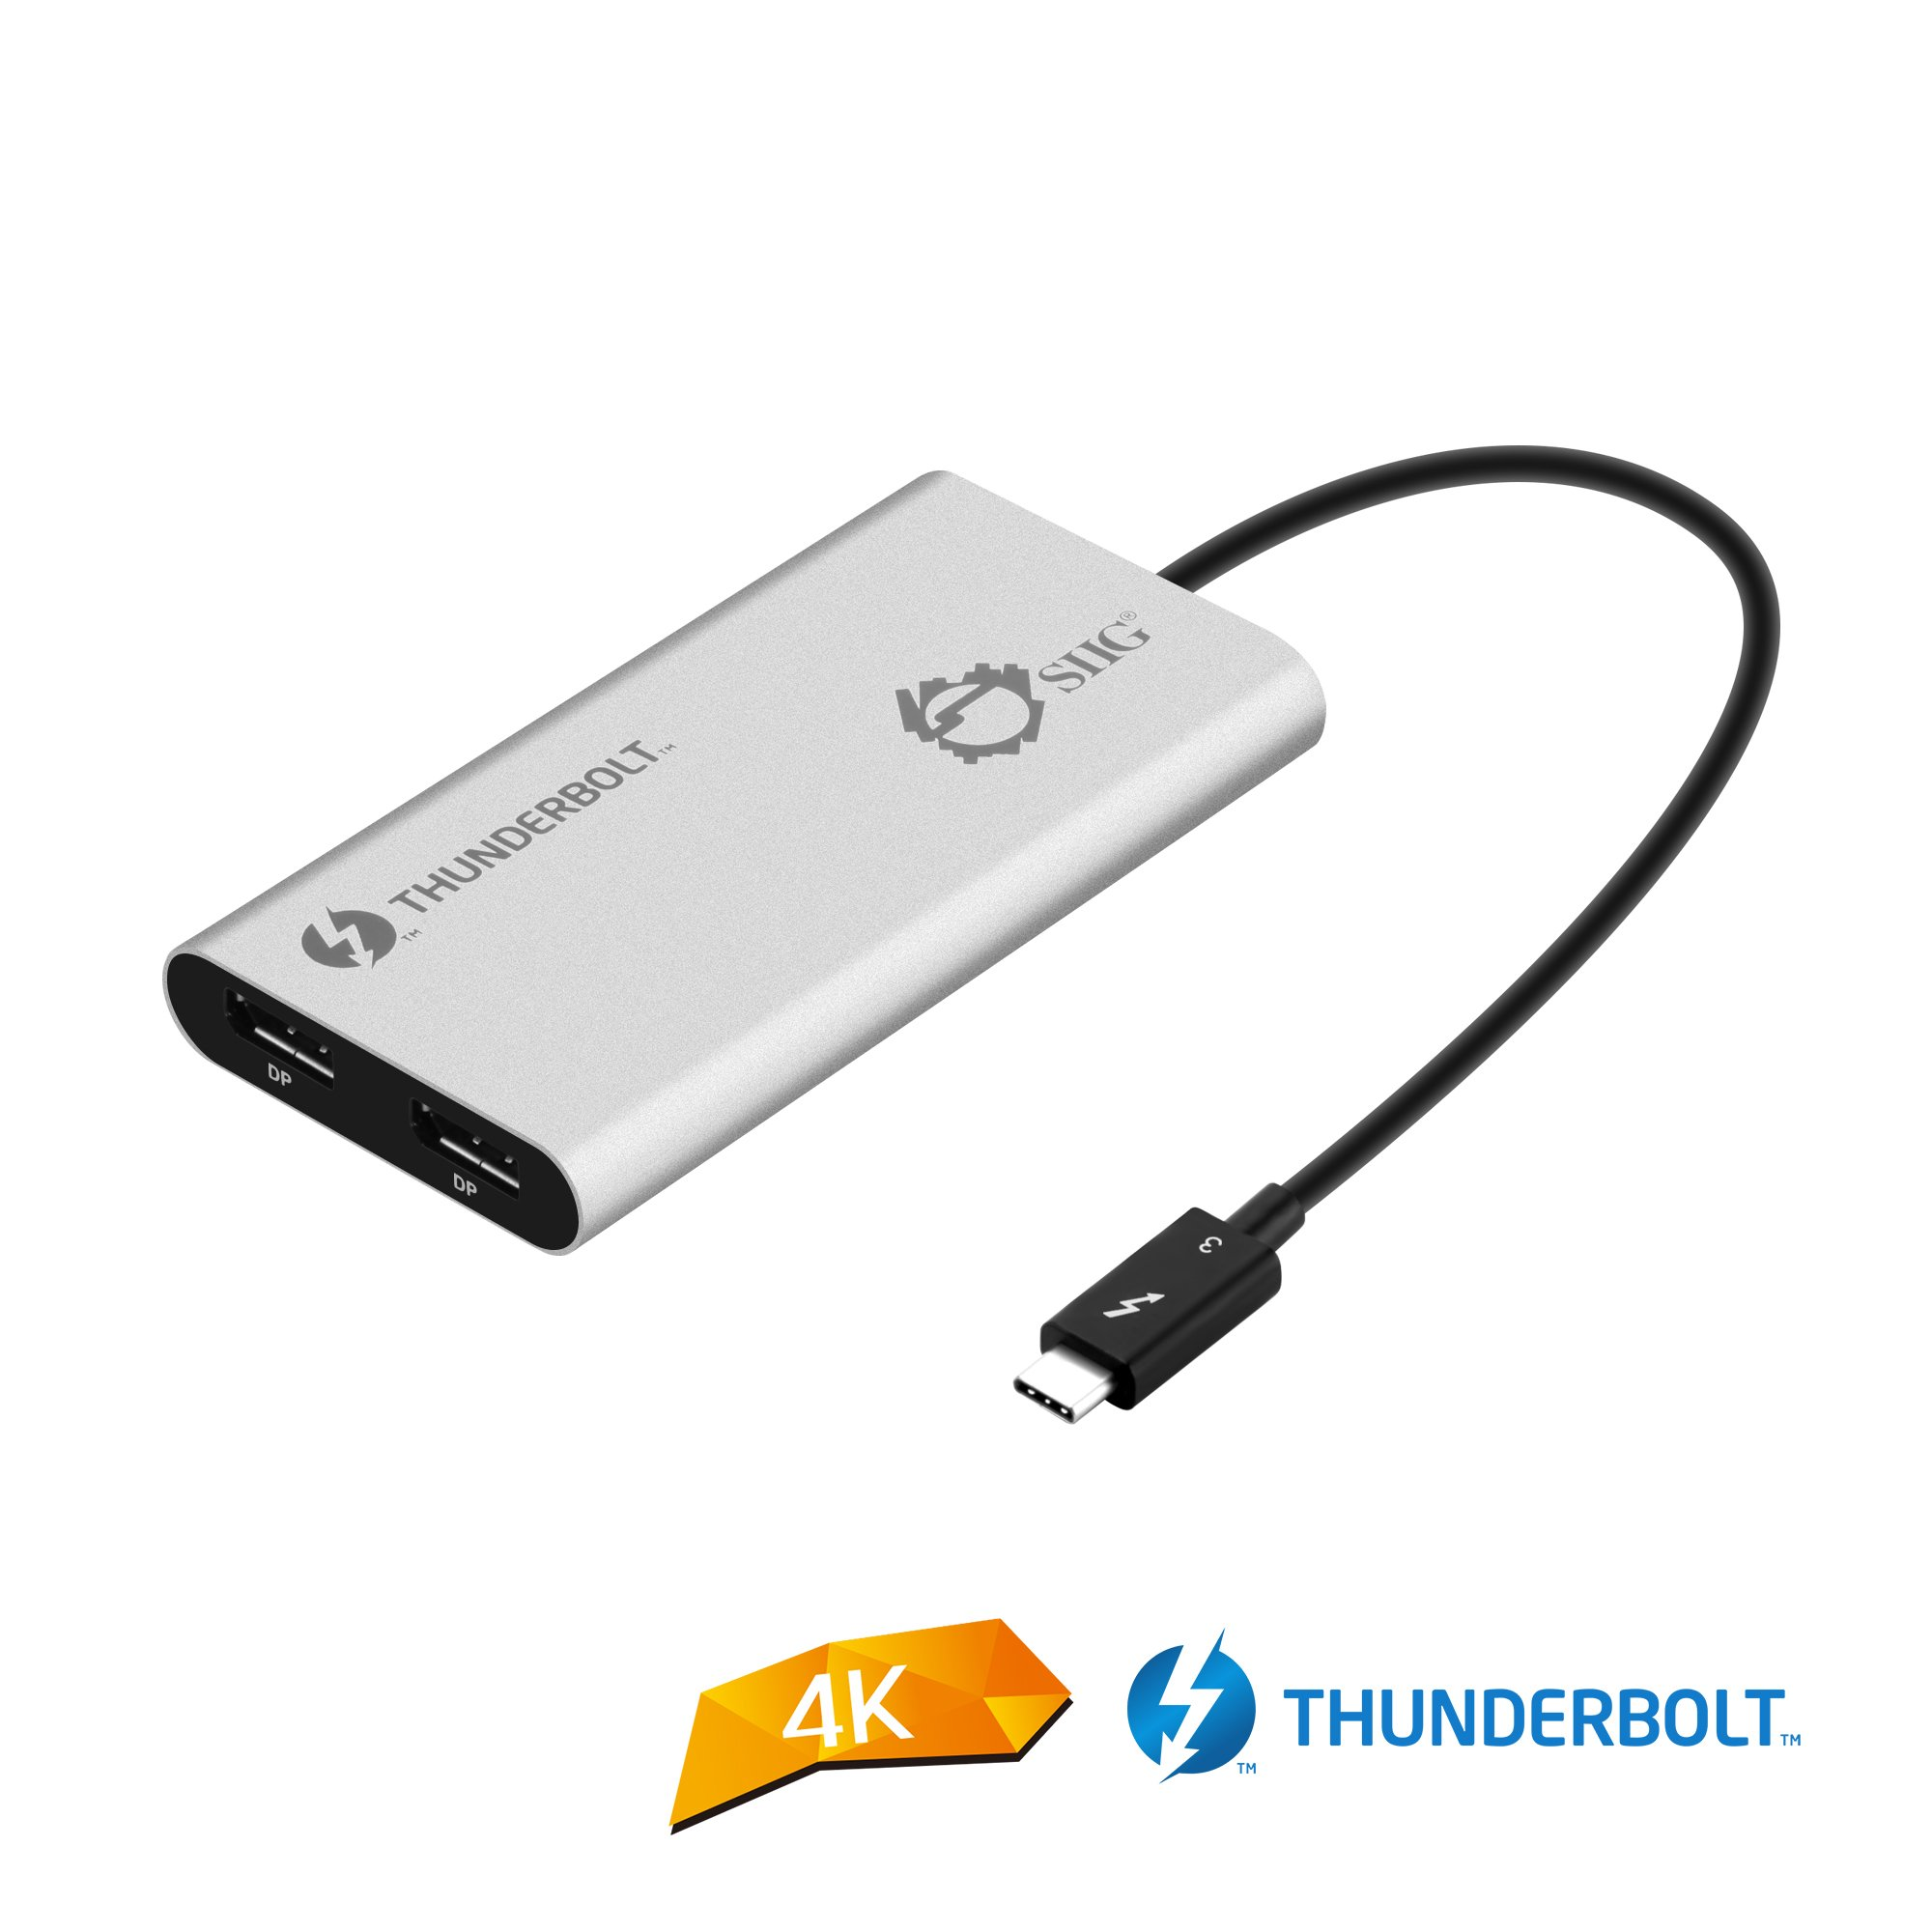 CERTIFIED SIIG Thunderbolt 3 to Dual DisplayPort Adapter - Single 5K@60H - Dual 4K@60HZ - USB Type C to 2 DP 1.2 orts for Mac & Windows INTEL THUNDERBOLT 3 CERTIFIED